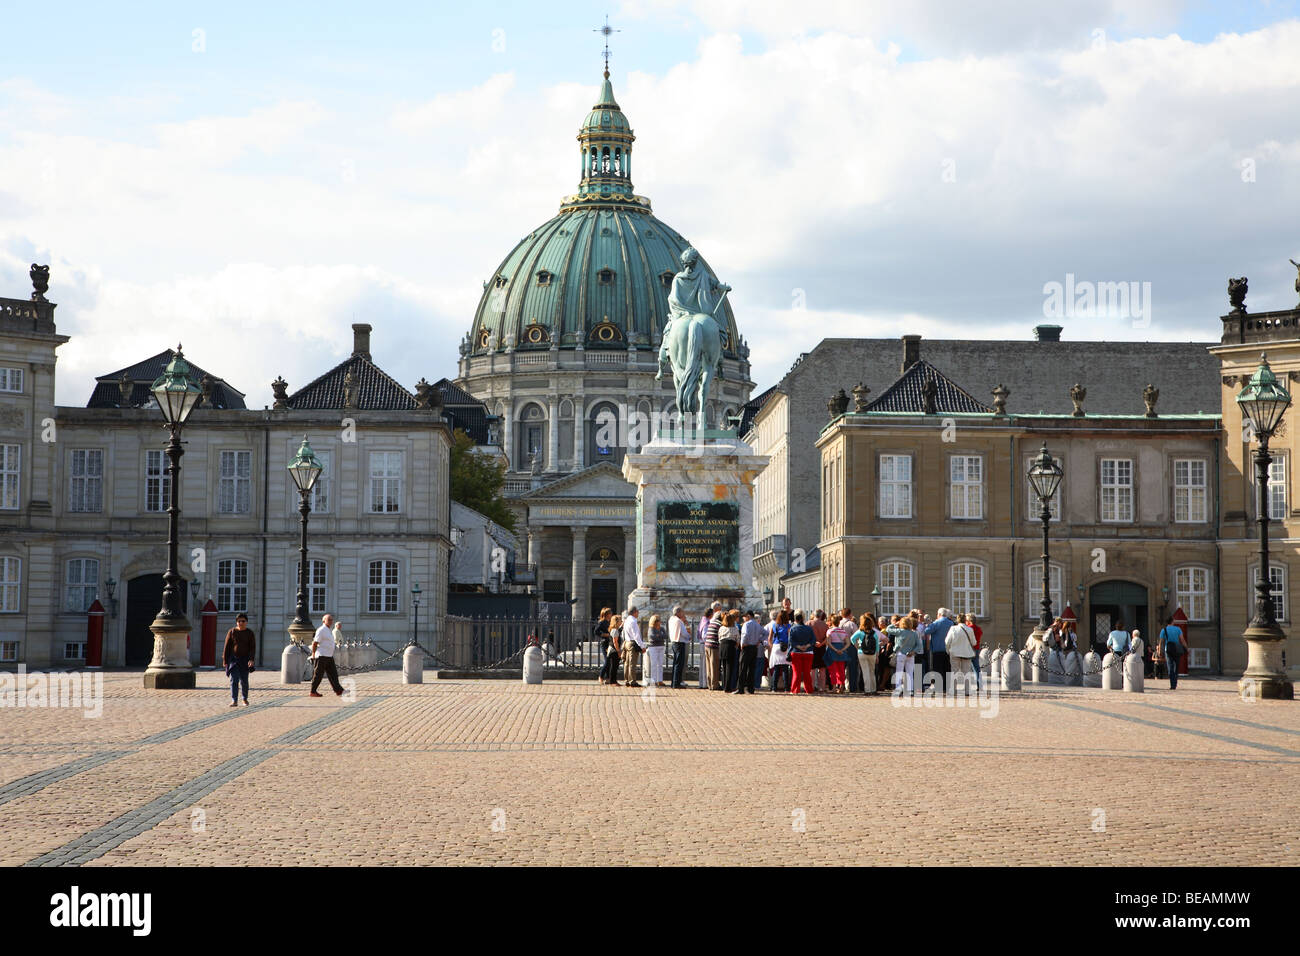 View towards the Marble Church in Copenhagen through the palace yard of Amalienborg Palace with the equestrian statue. - Stock Image